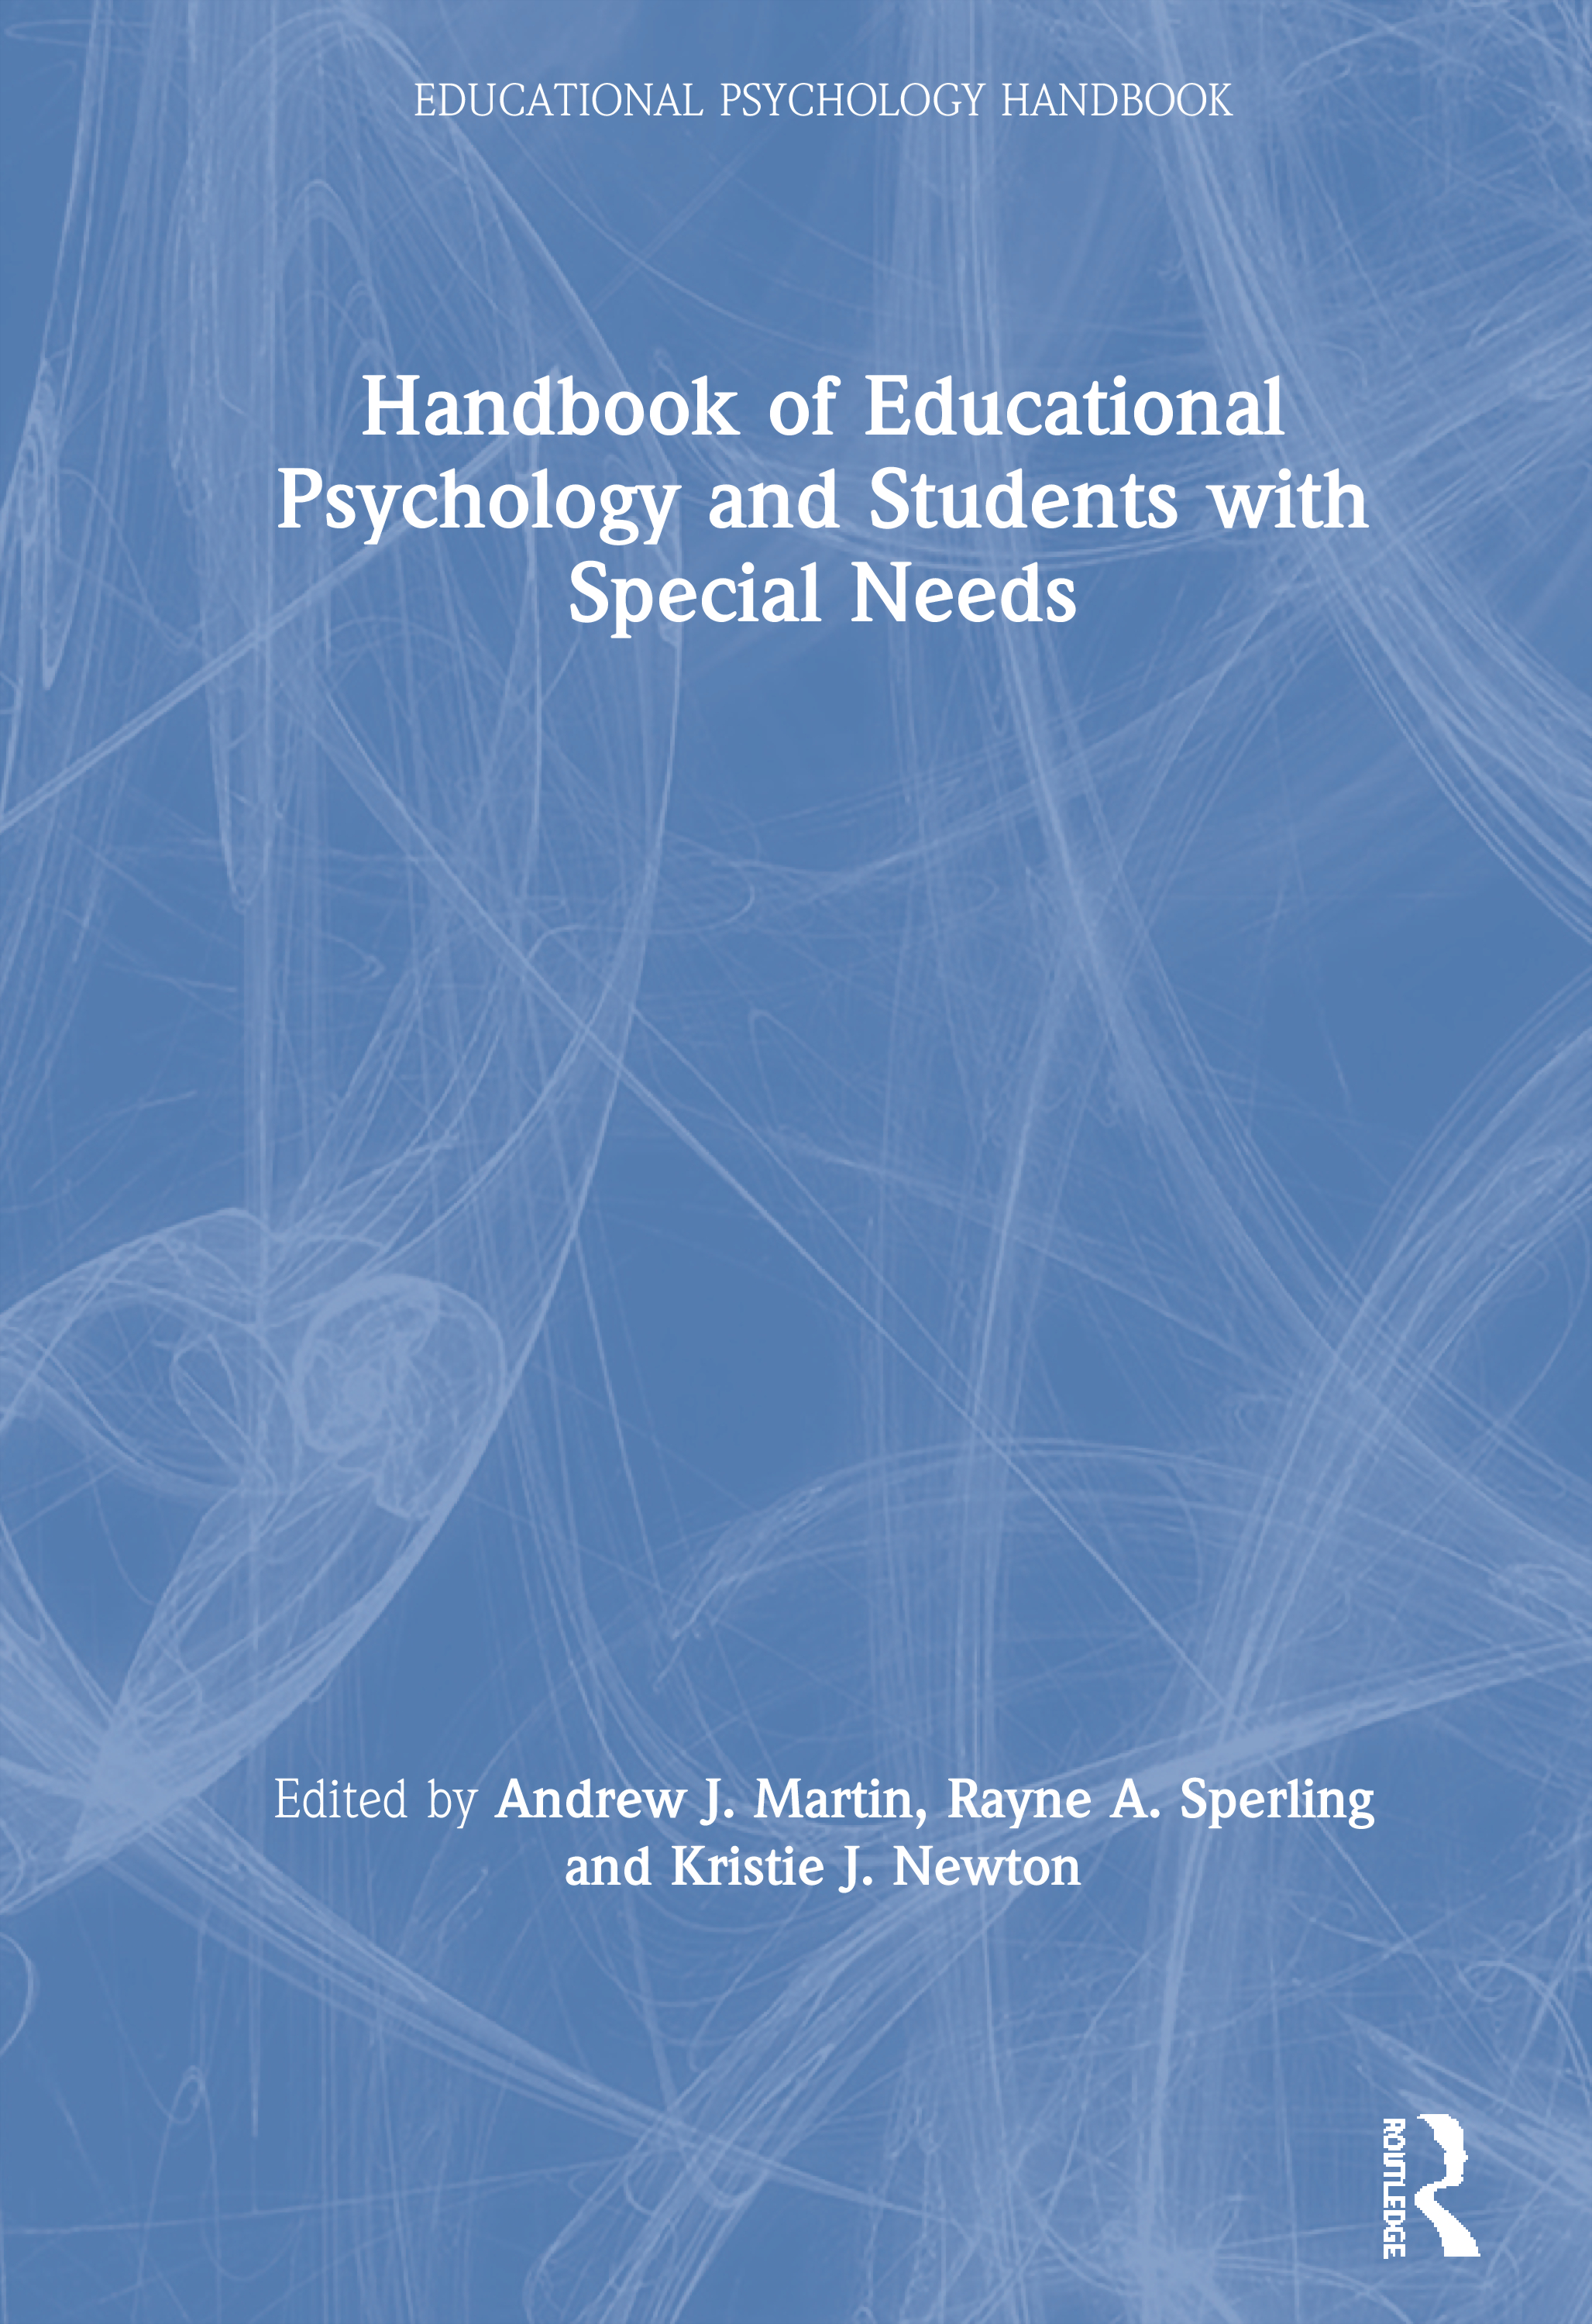 Handbook of Educational Psychology and Students with Special Needs: 1st Edition (Paperback) book cover